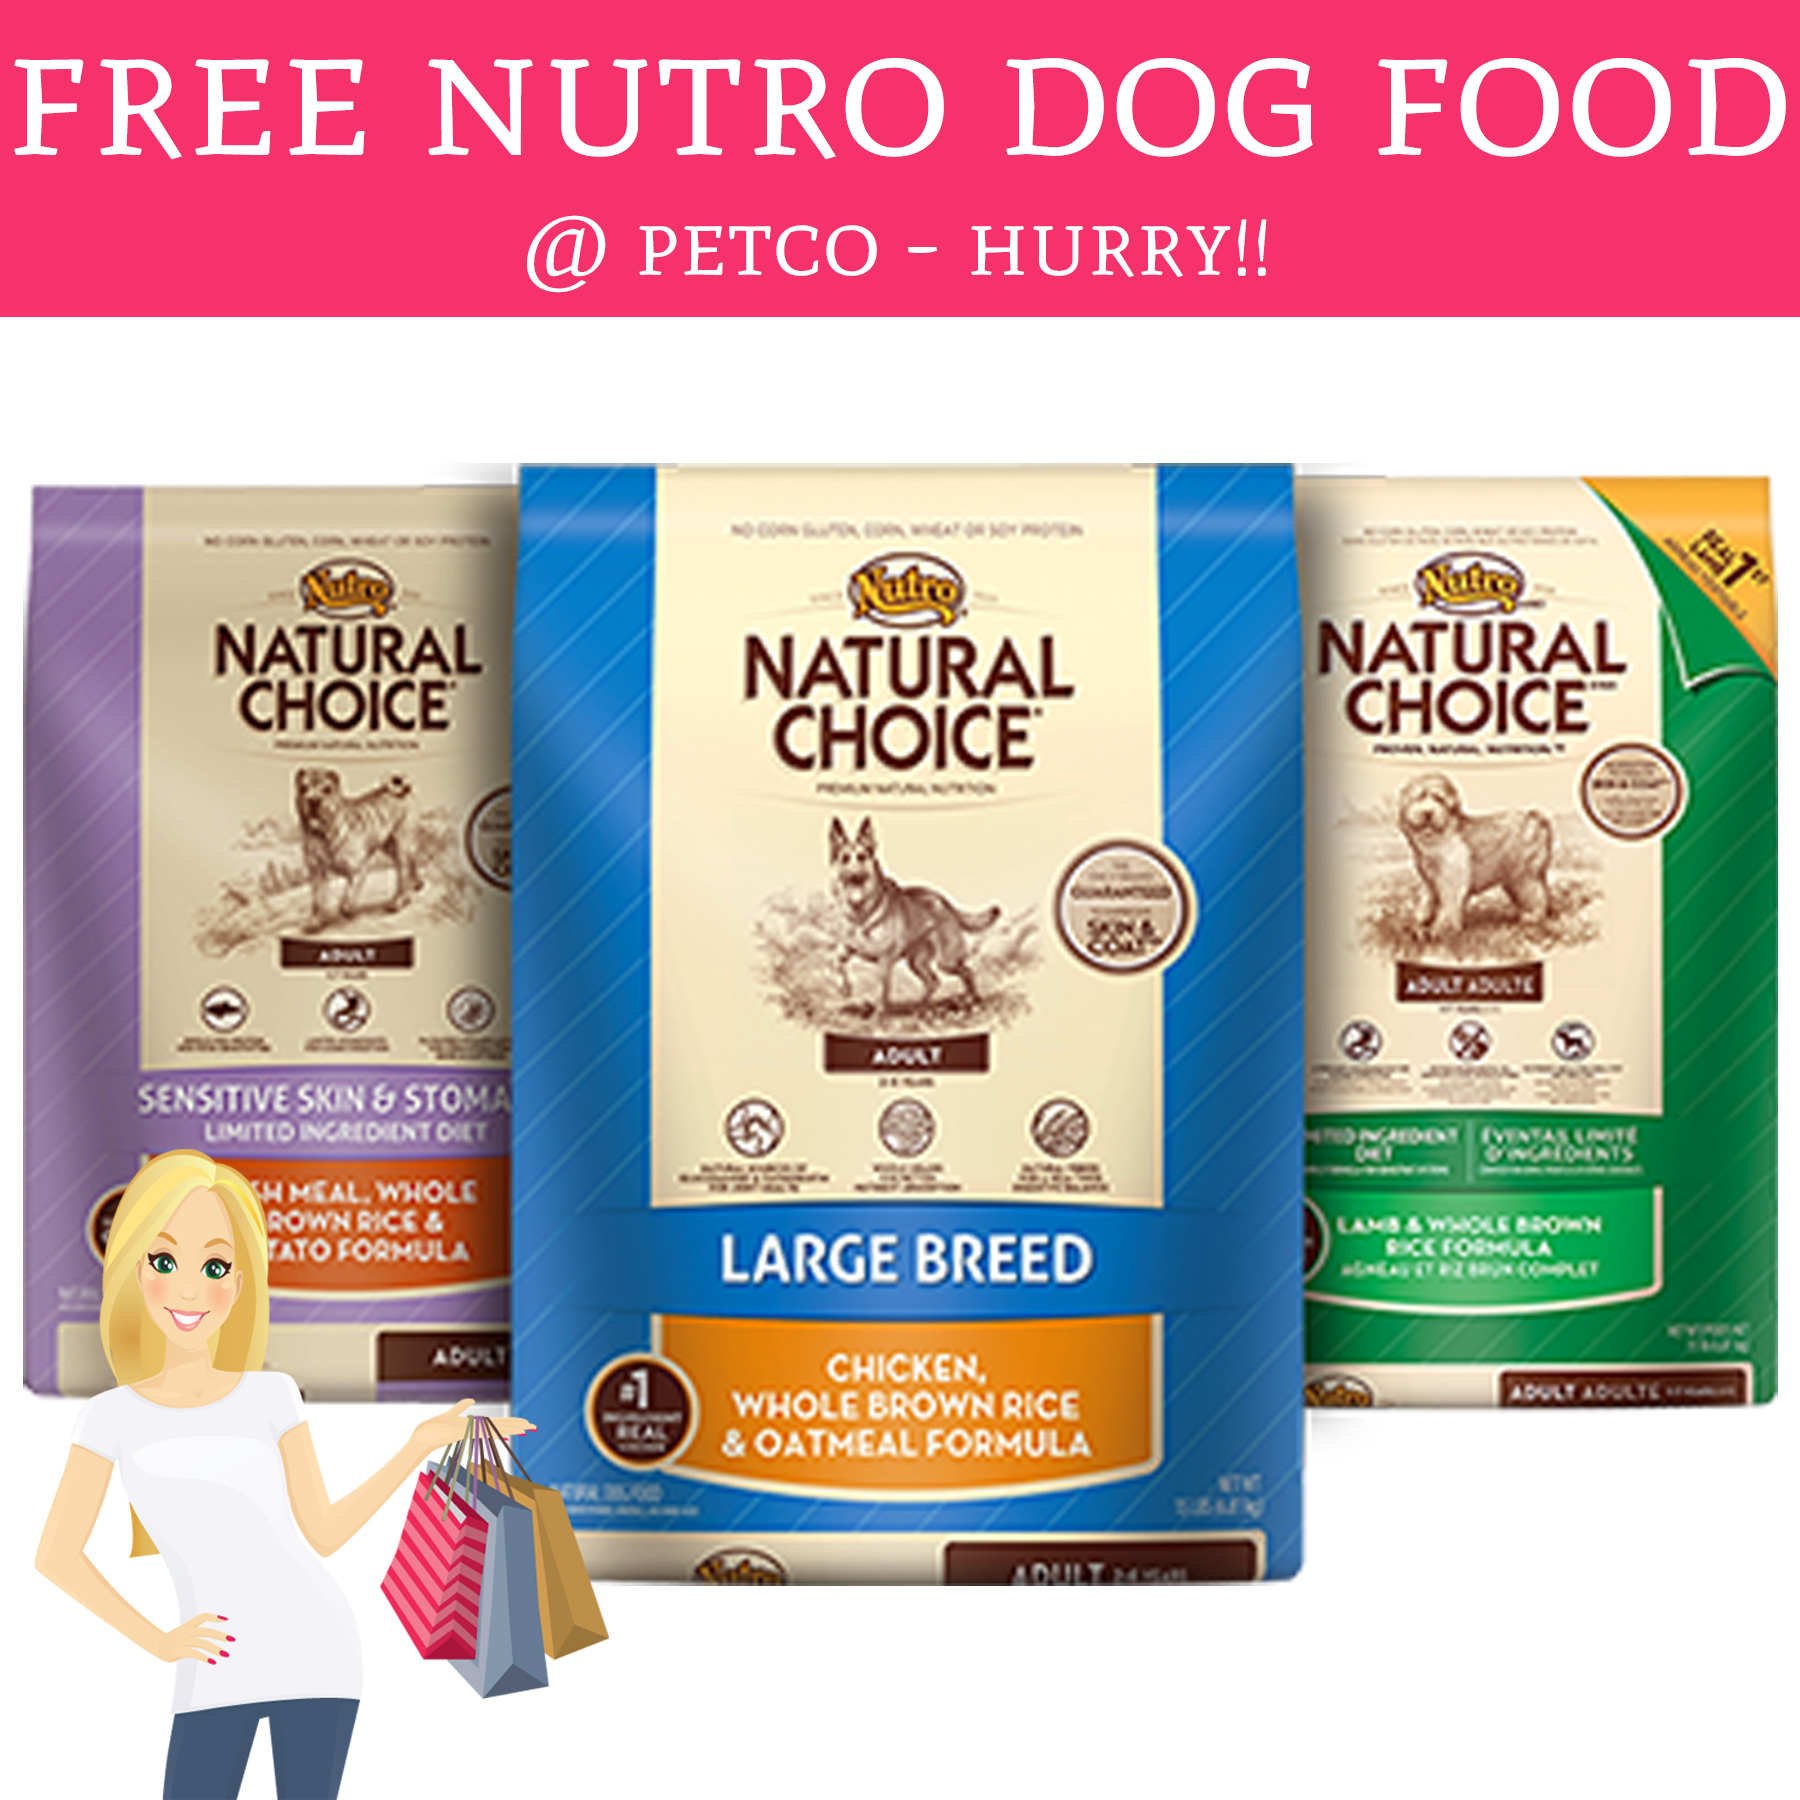 NUTRO™ Dog Food Recipes. A pet's food energizes them from the inside out, and NUTRO FEED CLEAN™ recipes are simple, purposeful, and trustworthy - .